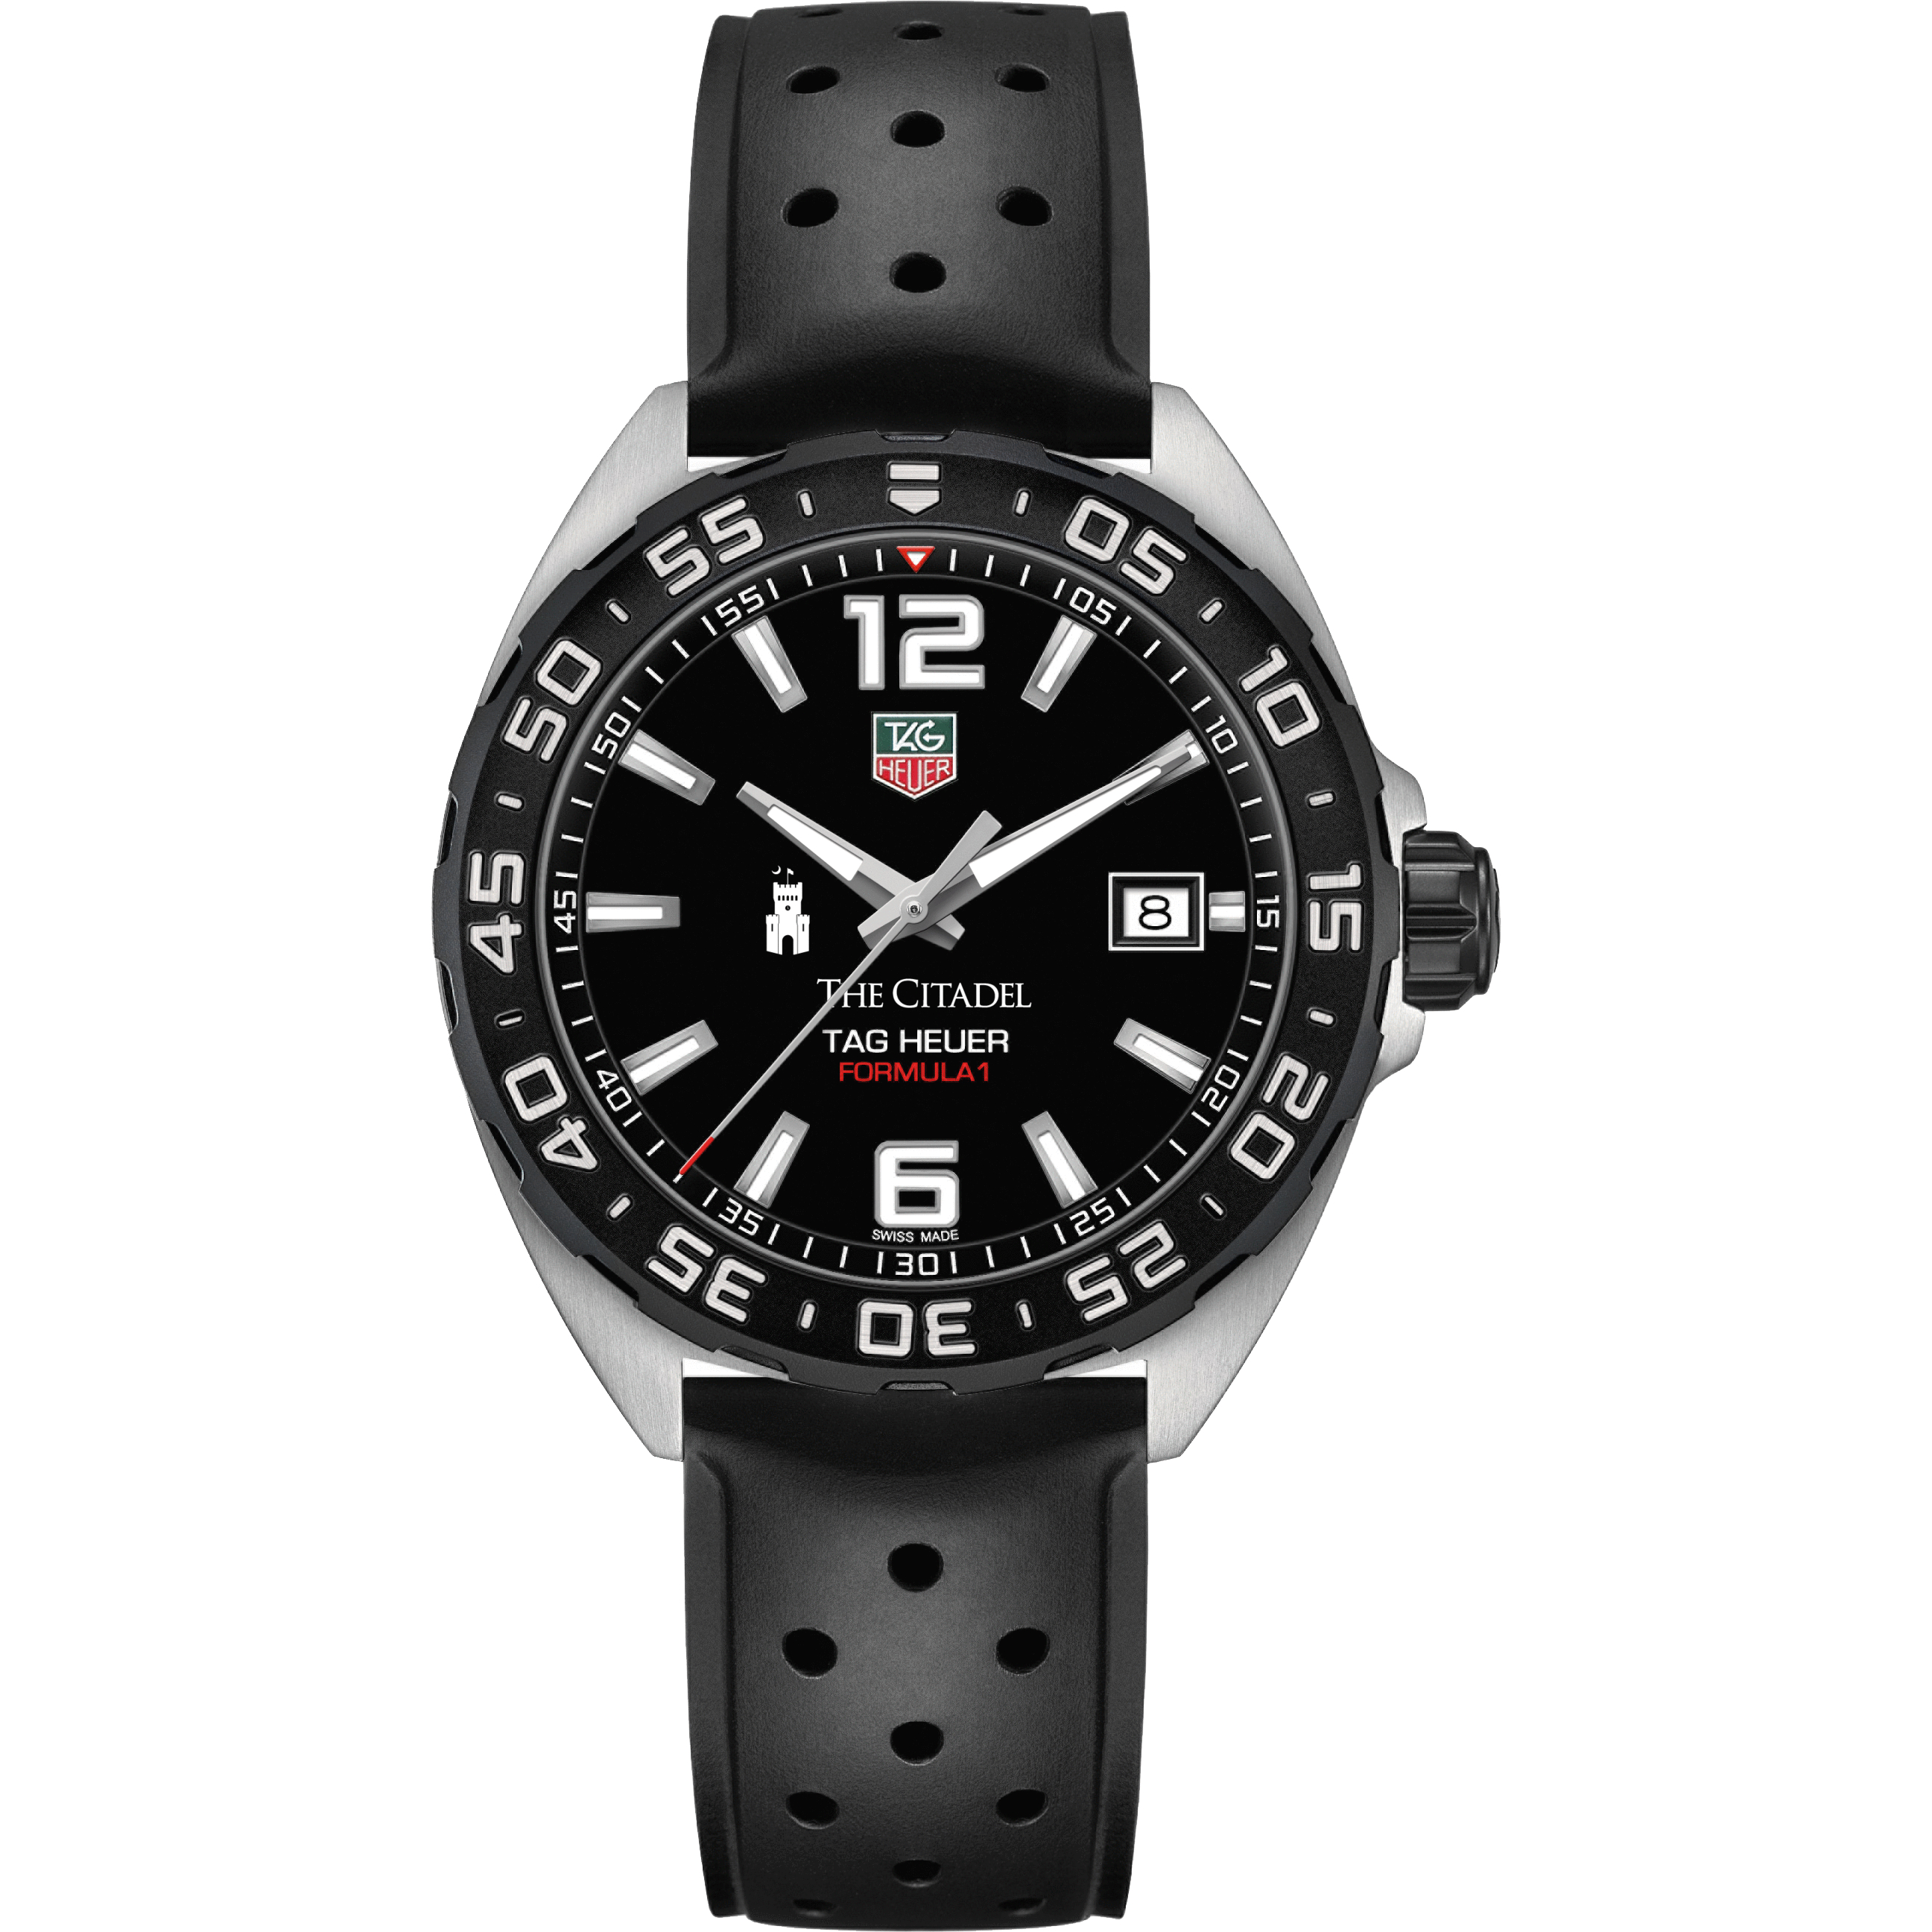 Citadel Men's TAG Heuer Formula 1 with Black Dial - Image 2